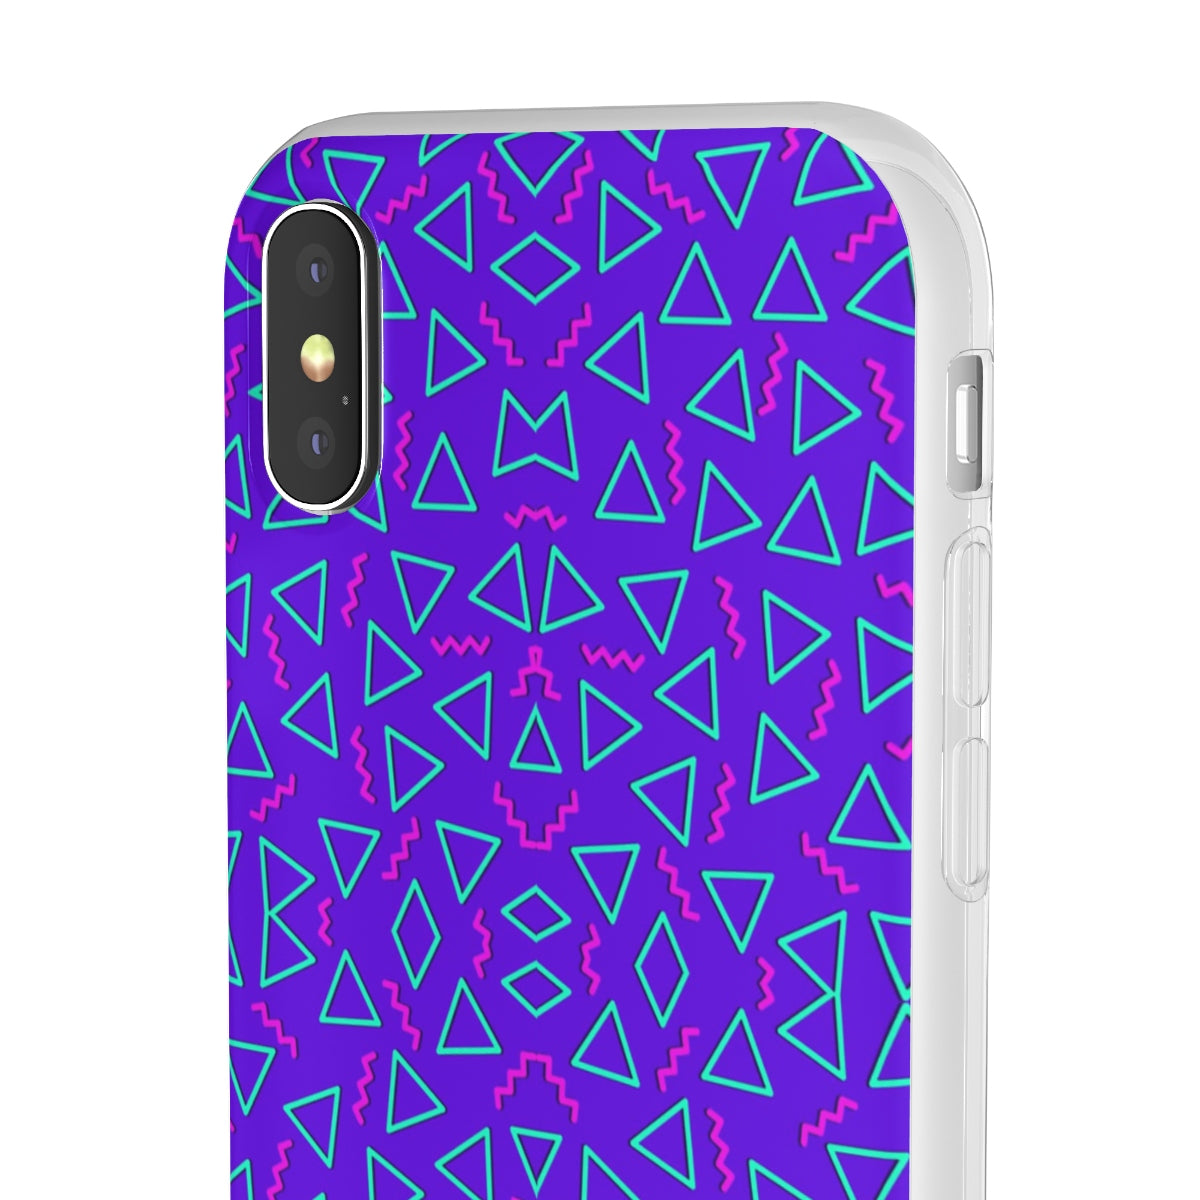 Retro Phone case